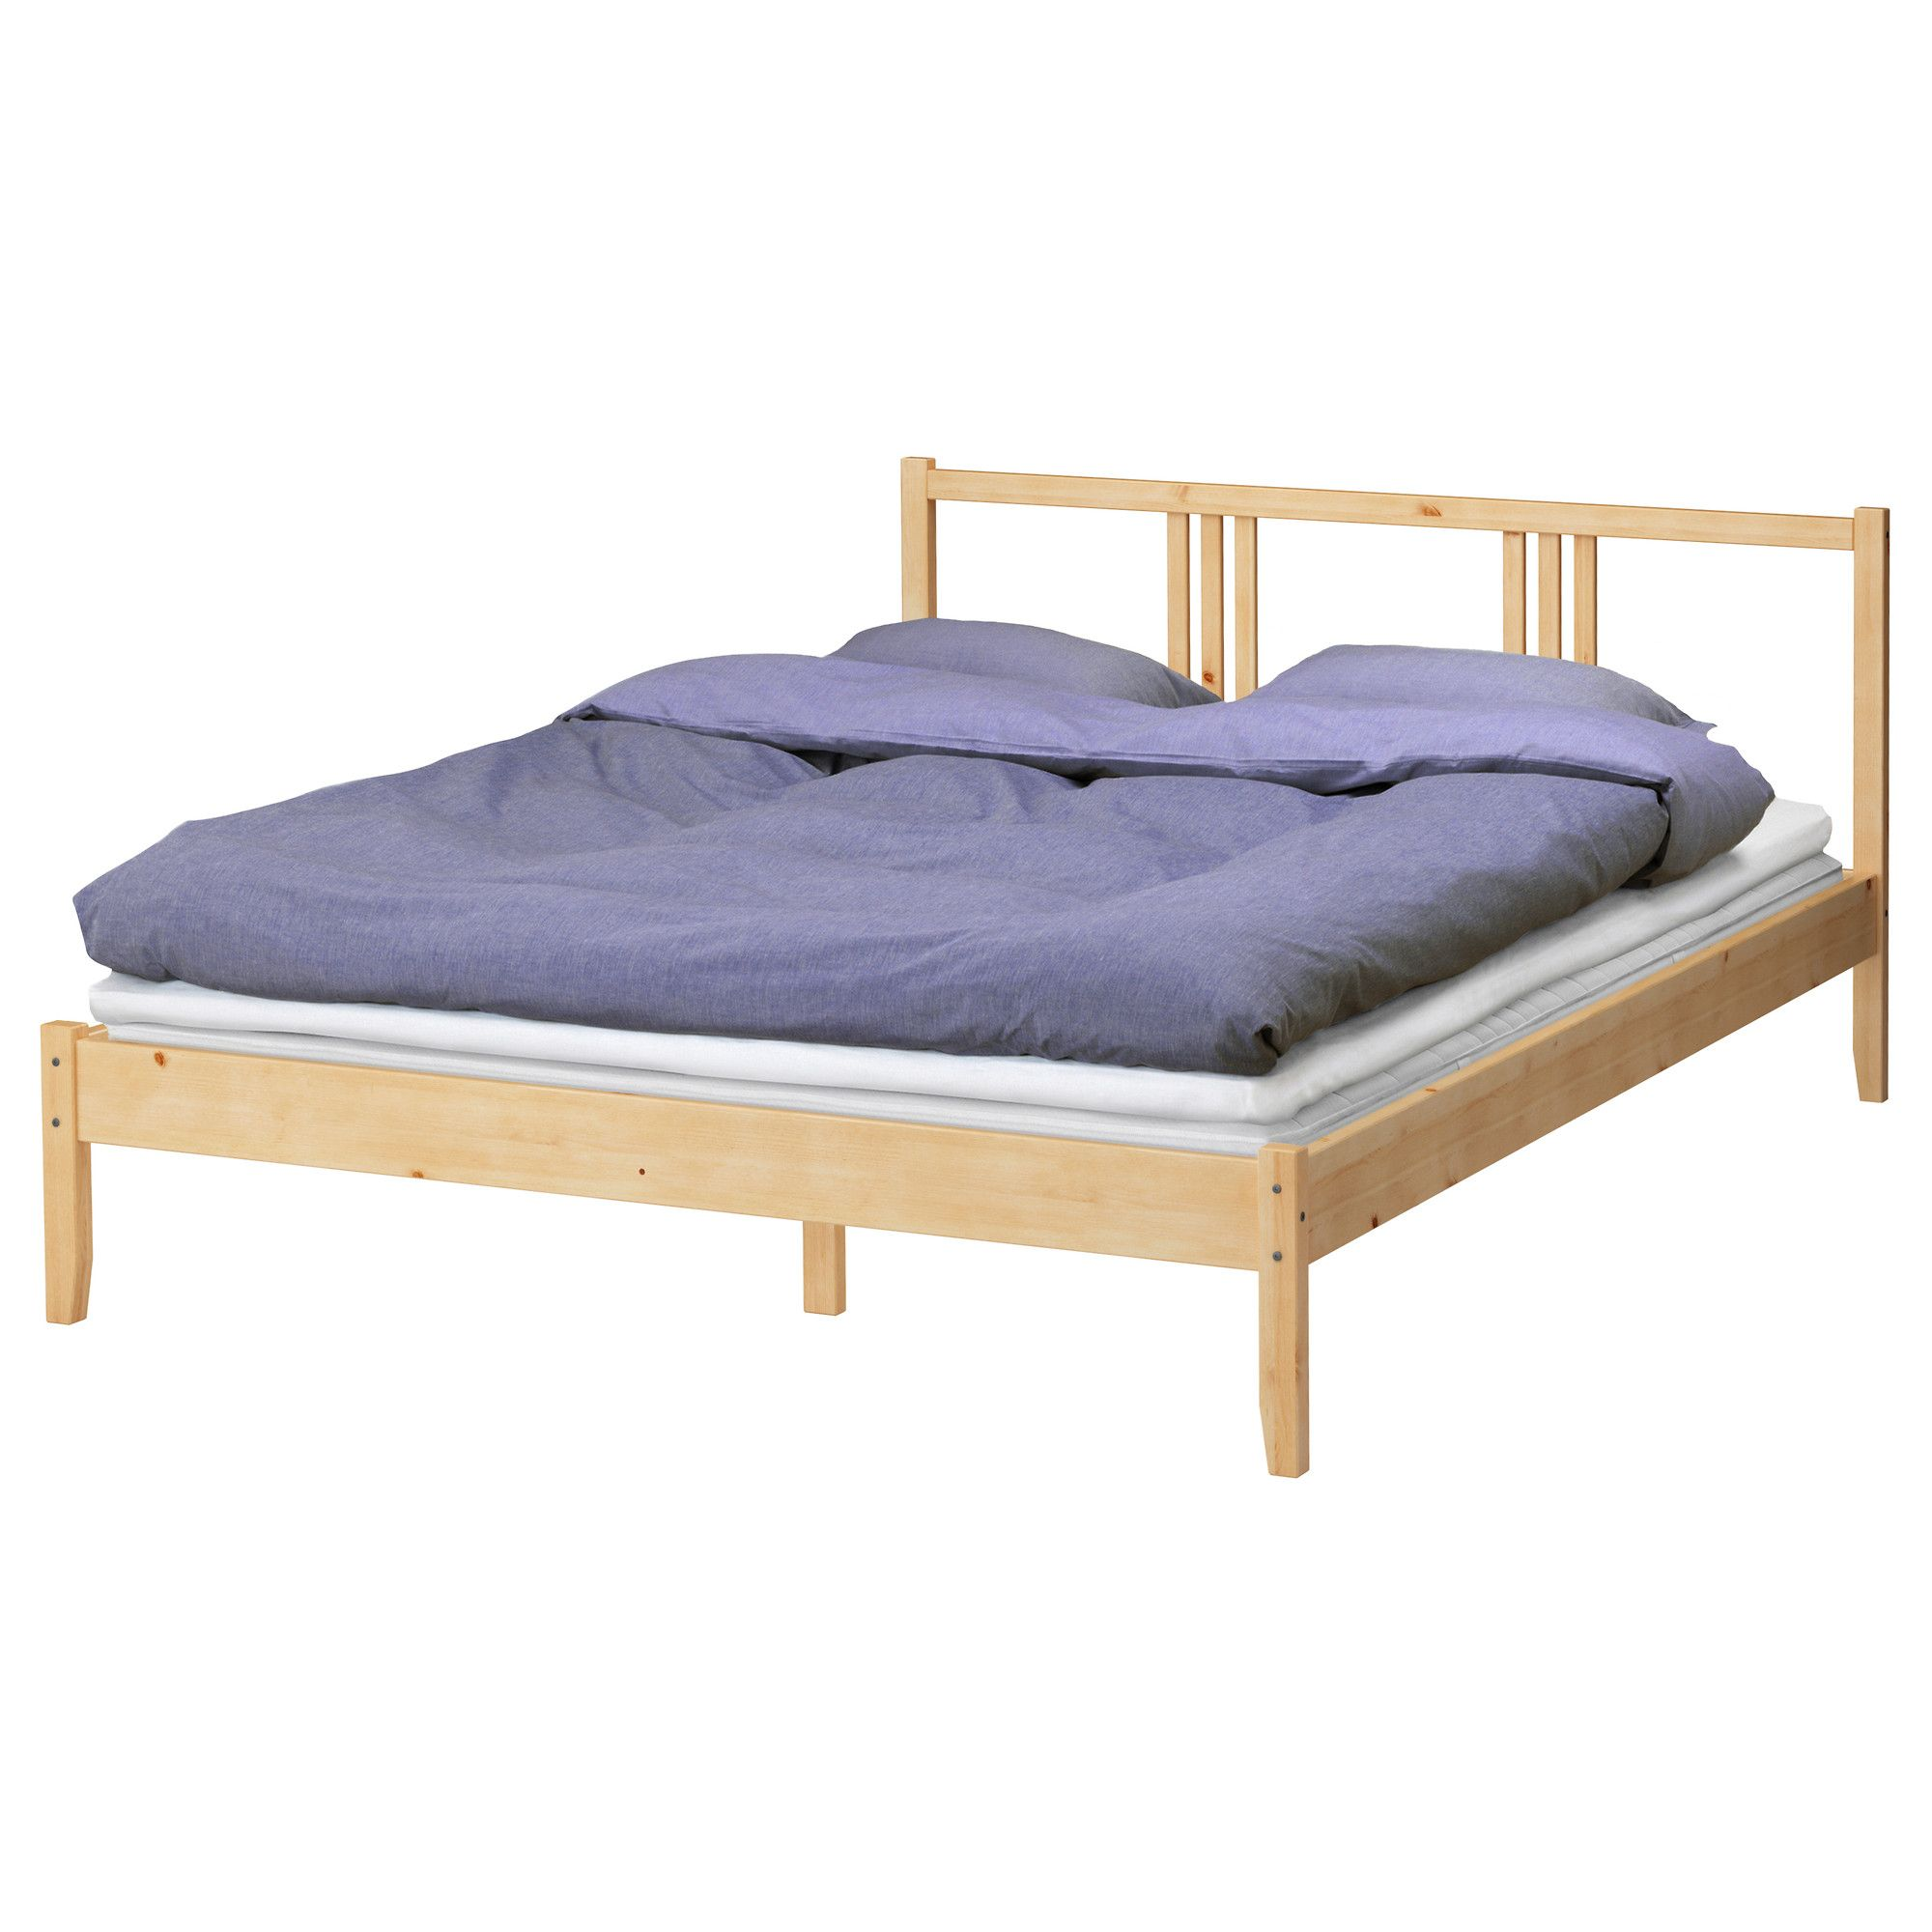 Full Bed Frame.Fjellse Bed Frame Full Double Ikea 49 99 Appartement Ikea